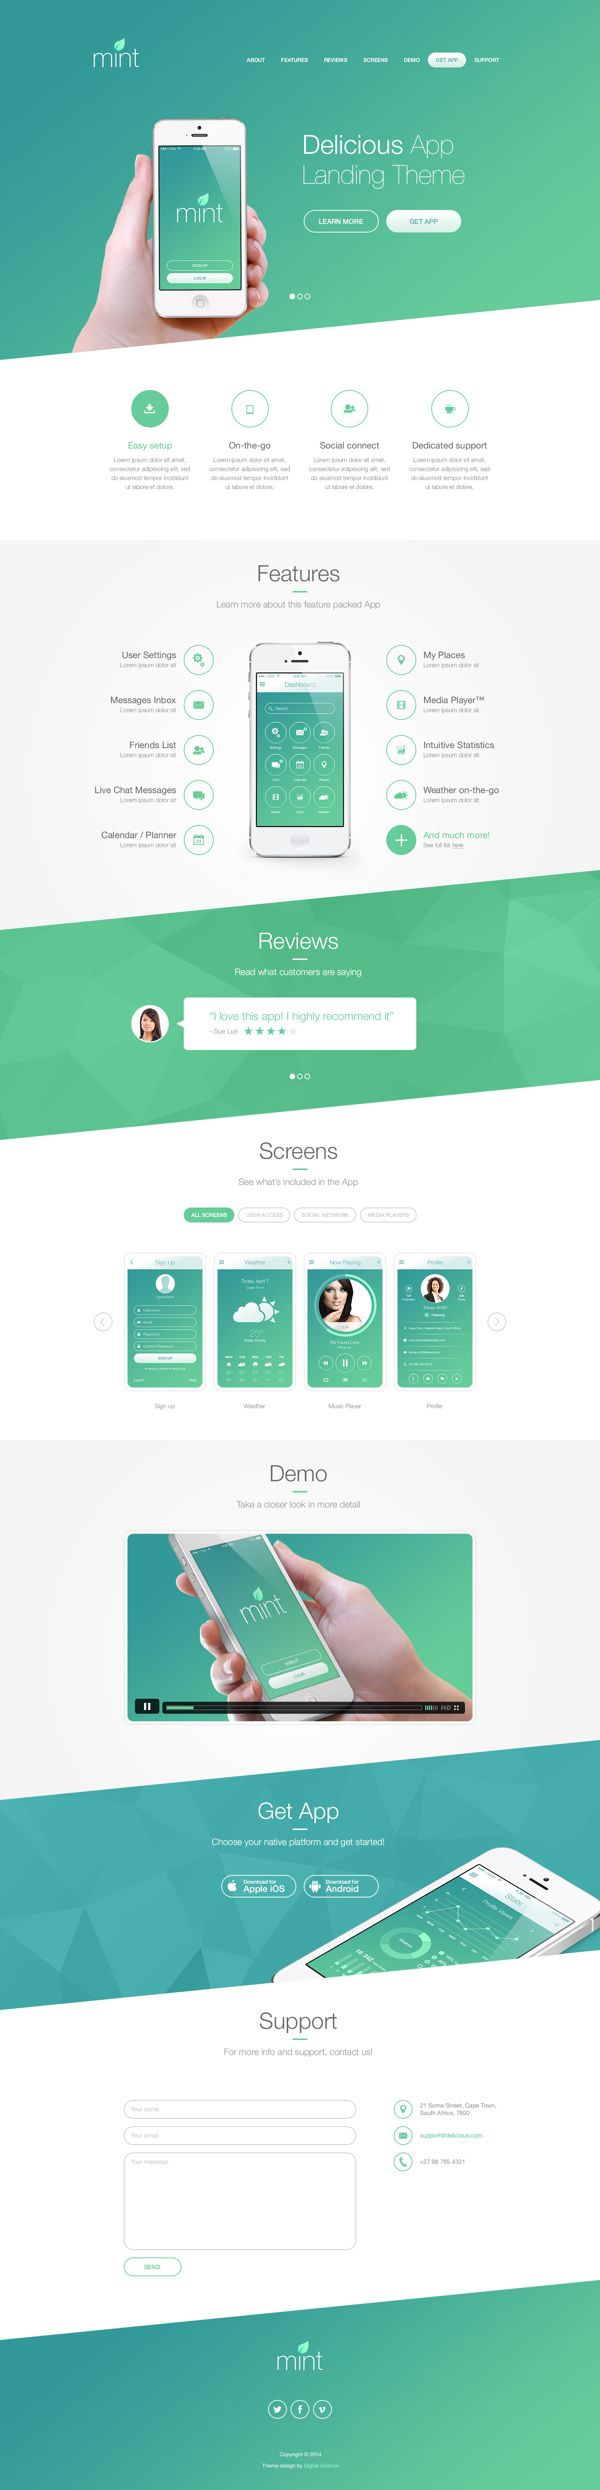 Delicious App Landing Theme by Pierre Marais